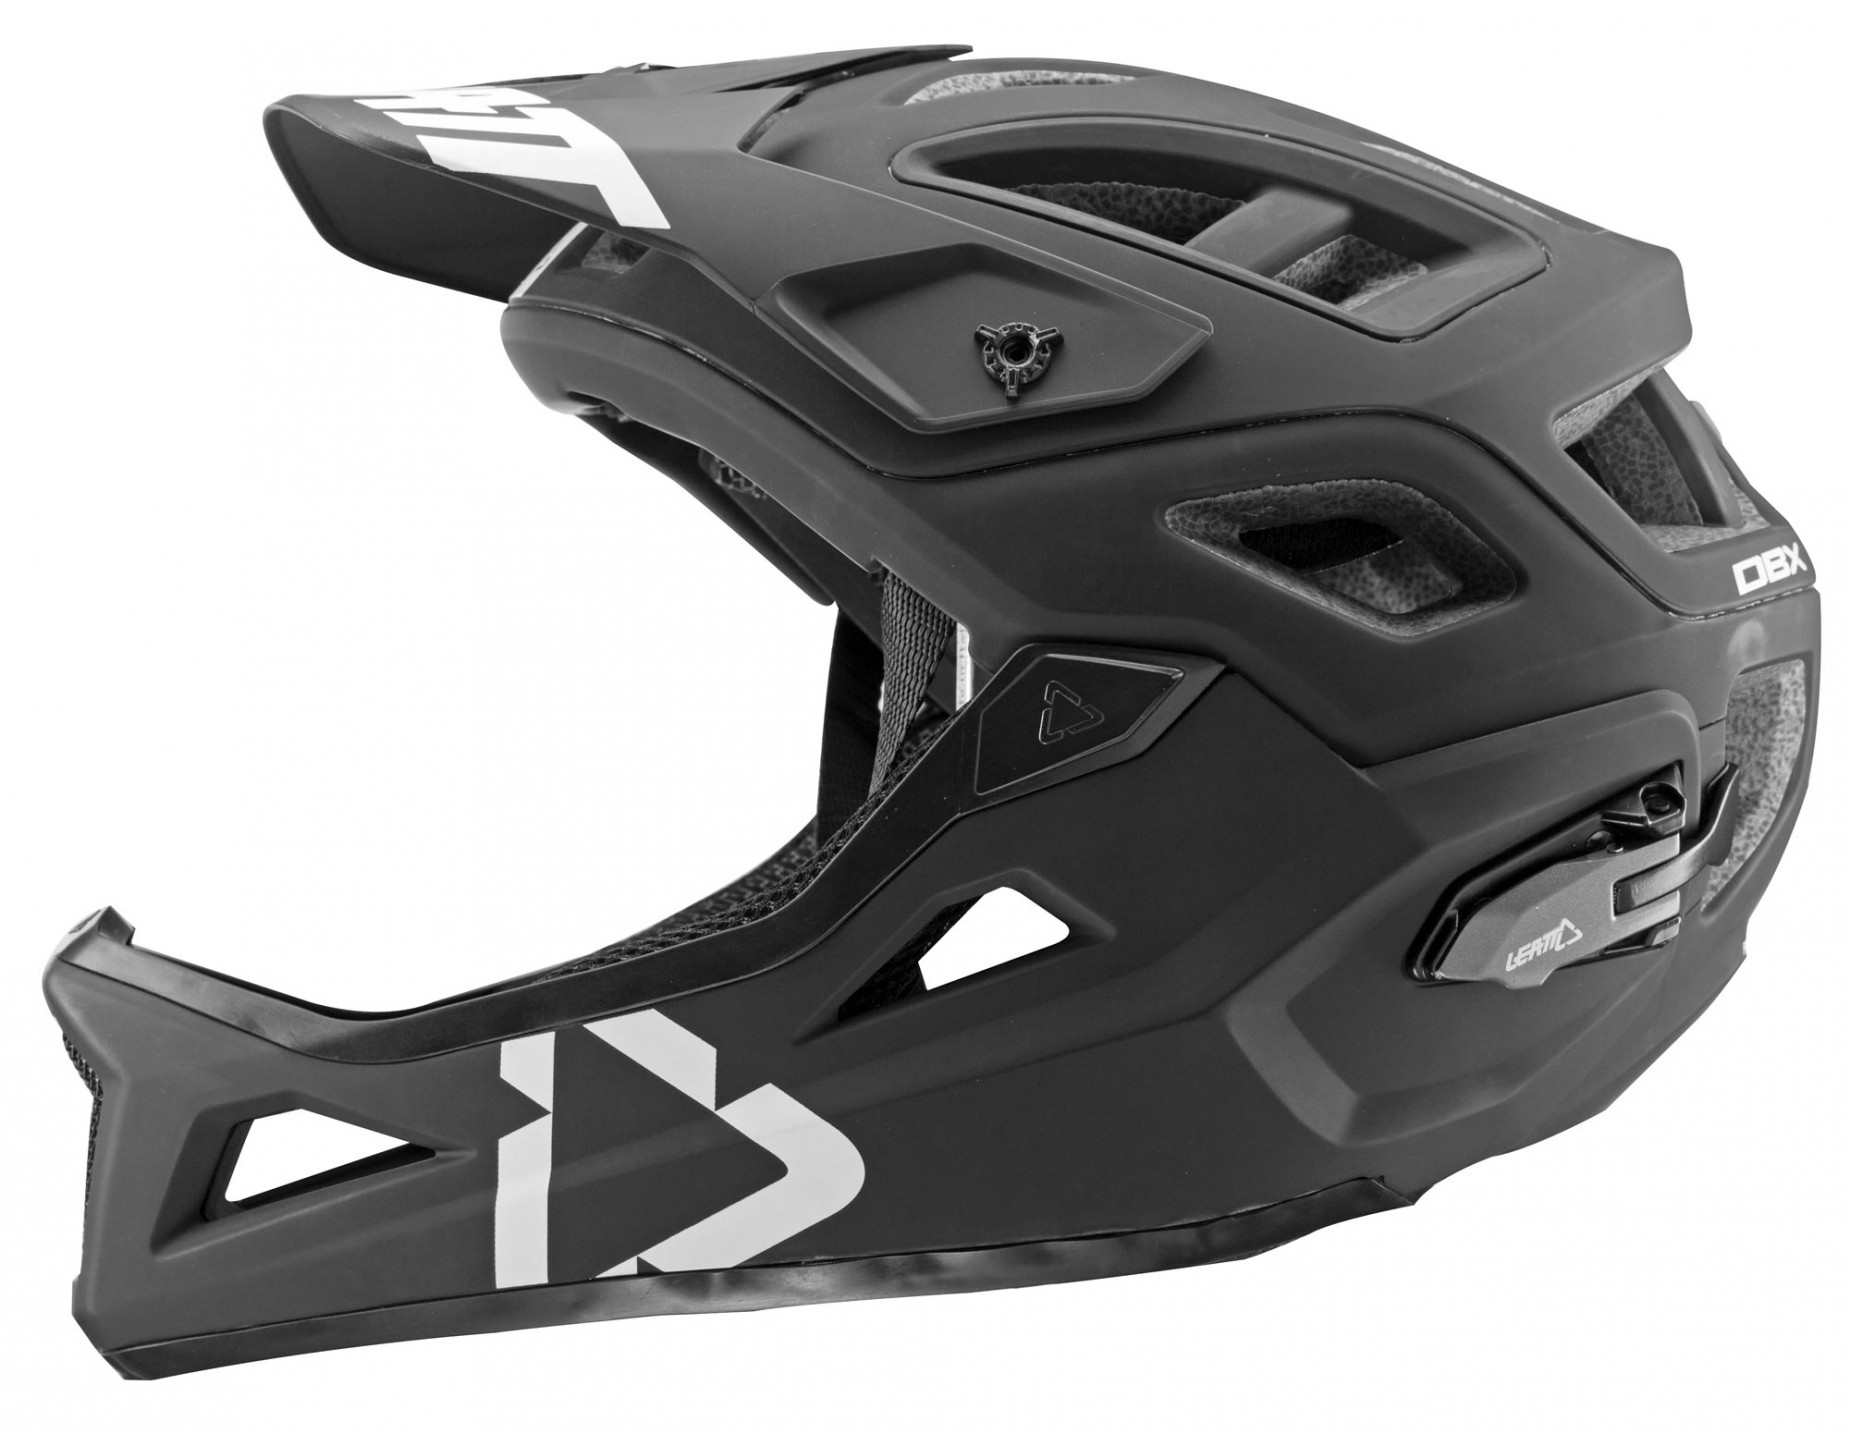 leatt dbx 3 0 enduro fullface helm mtb genau was du. Black Bedroom Furniture Sets. Home Design Ideas